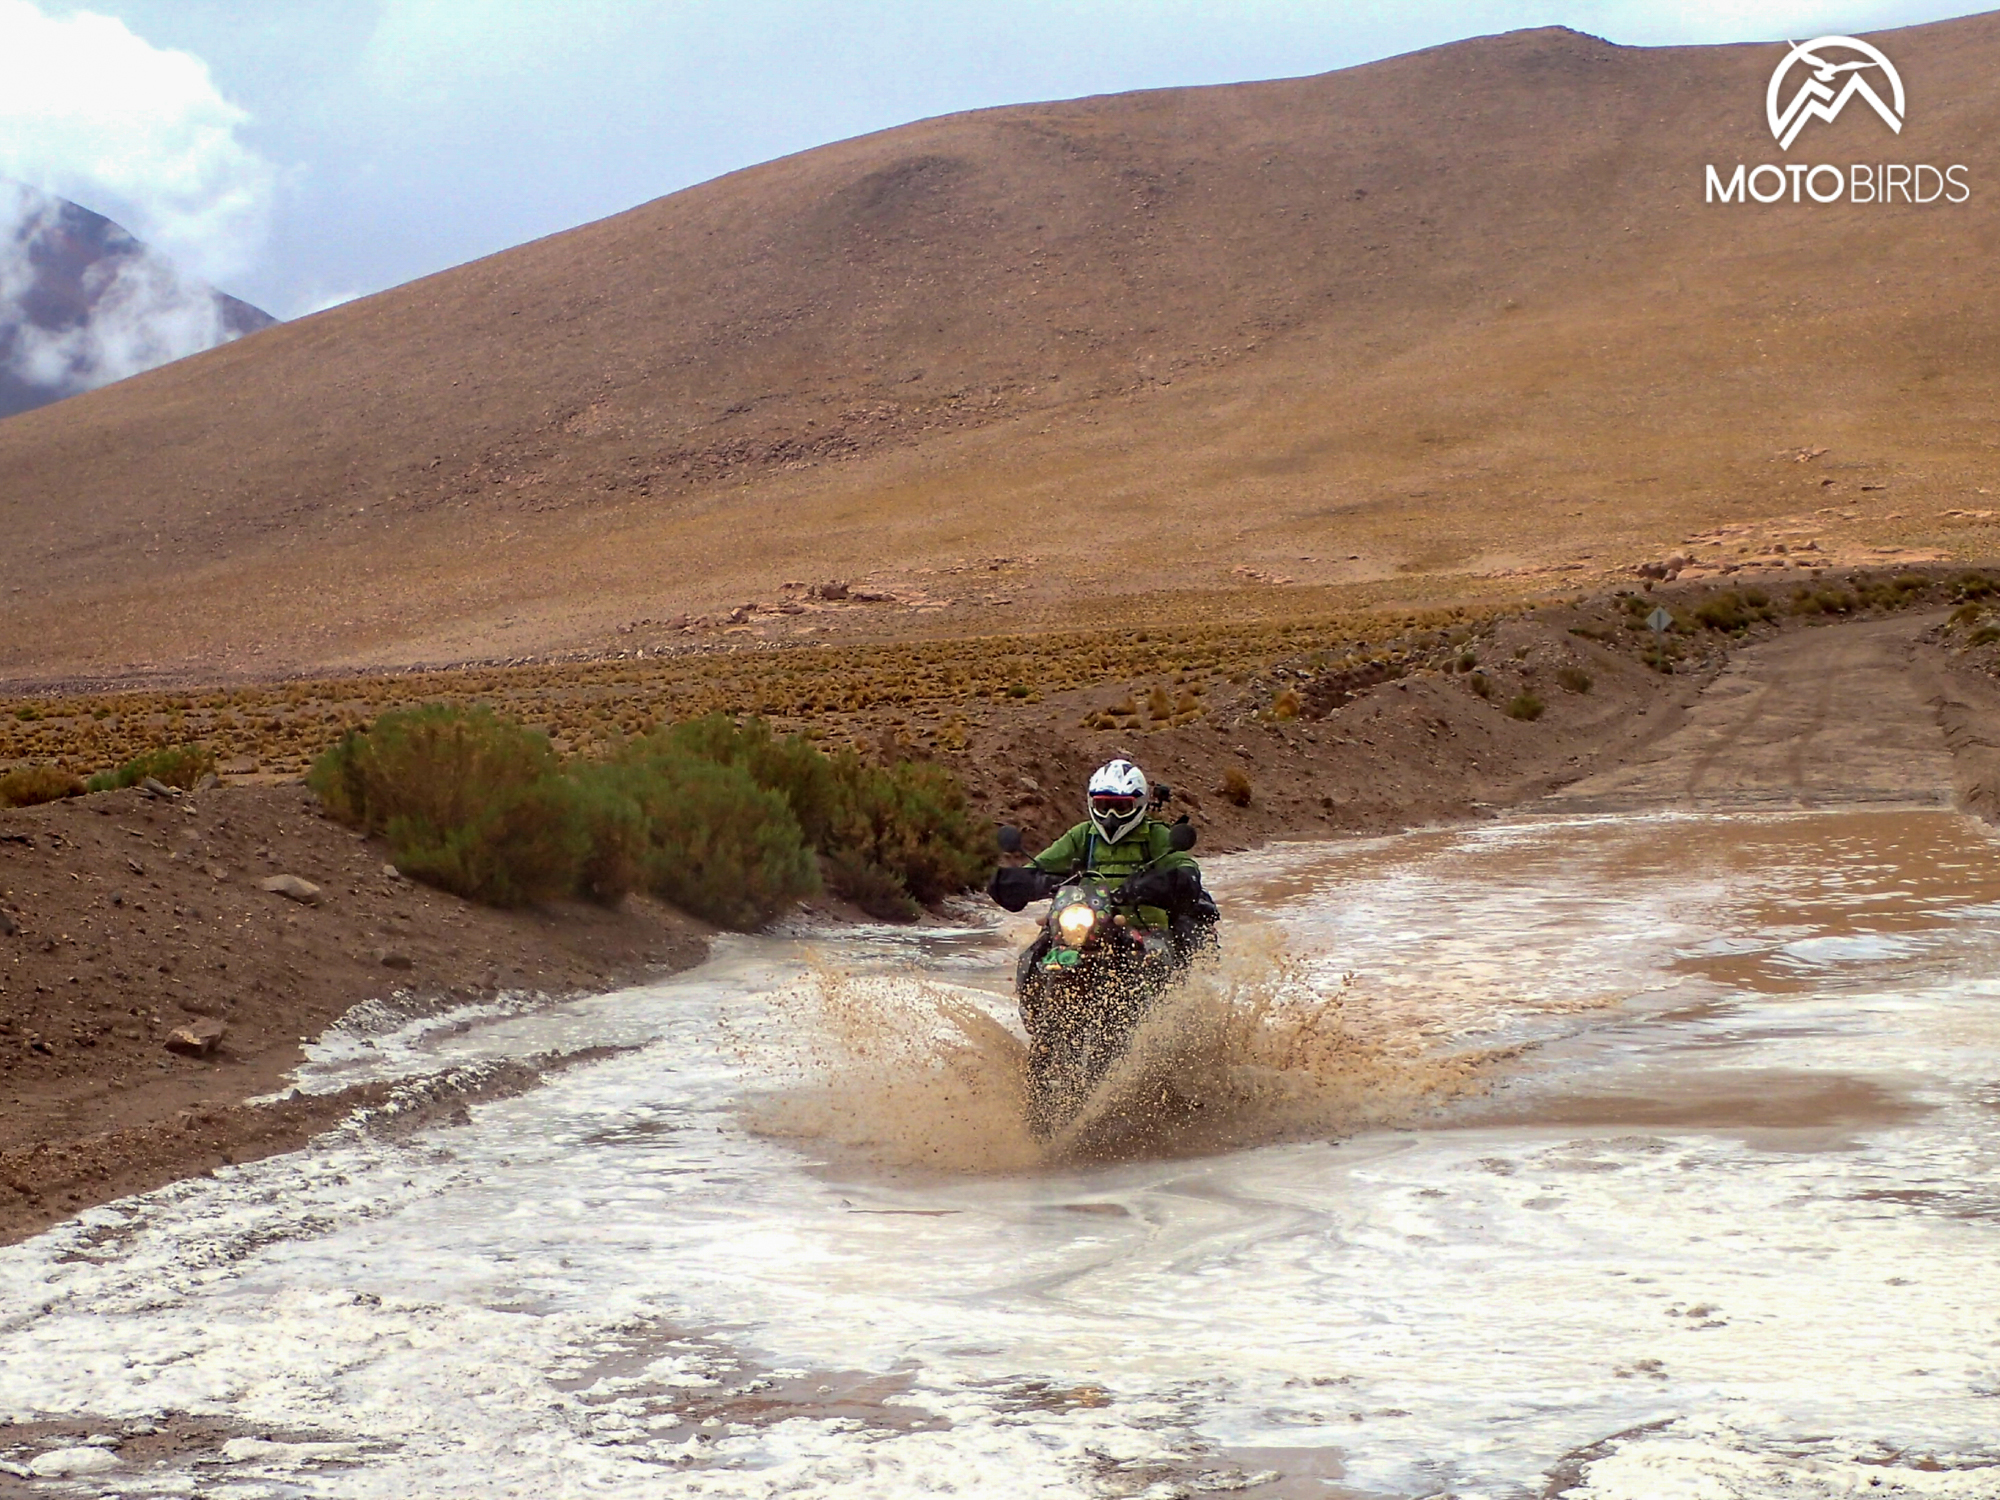 motorcycle trip to South America